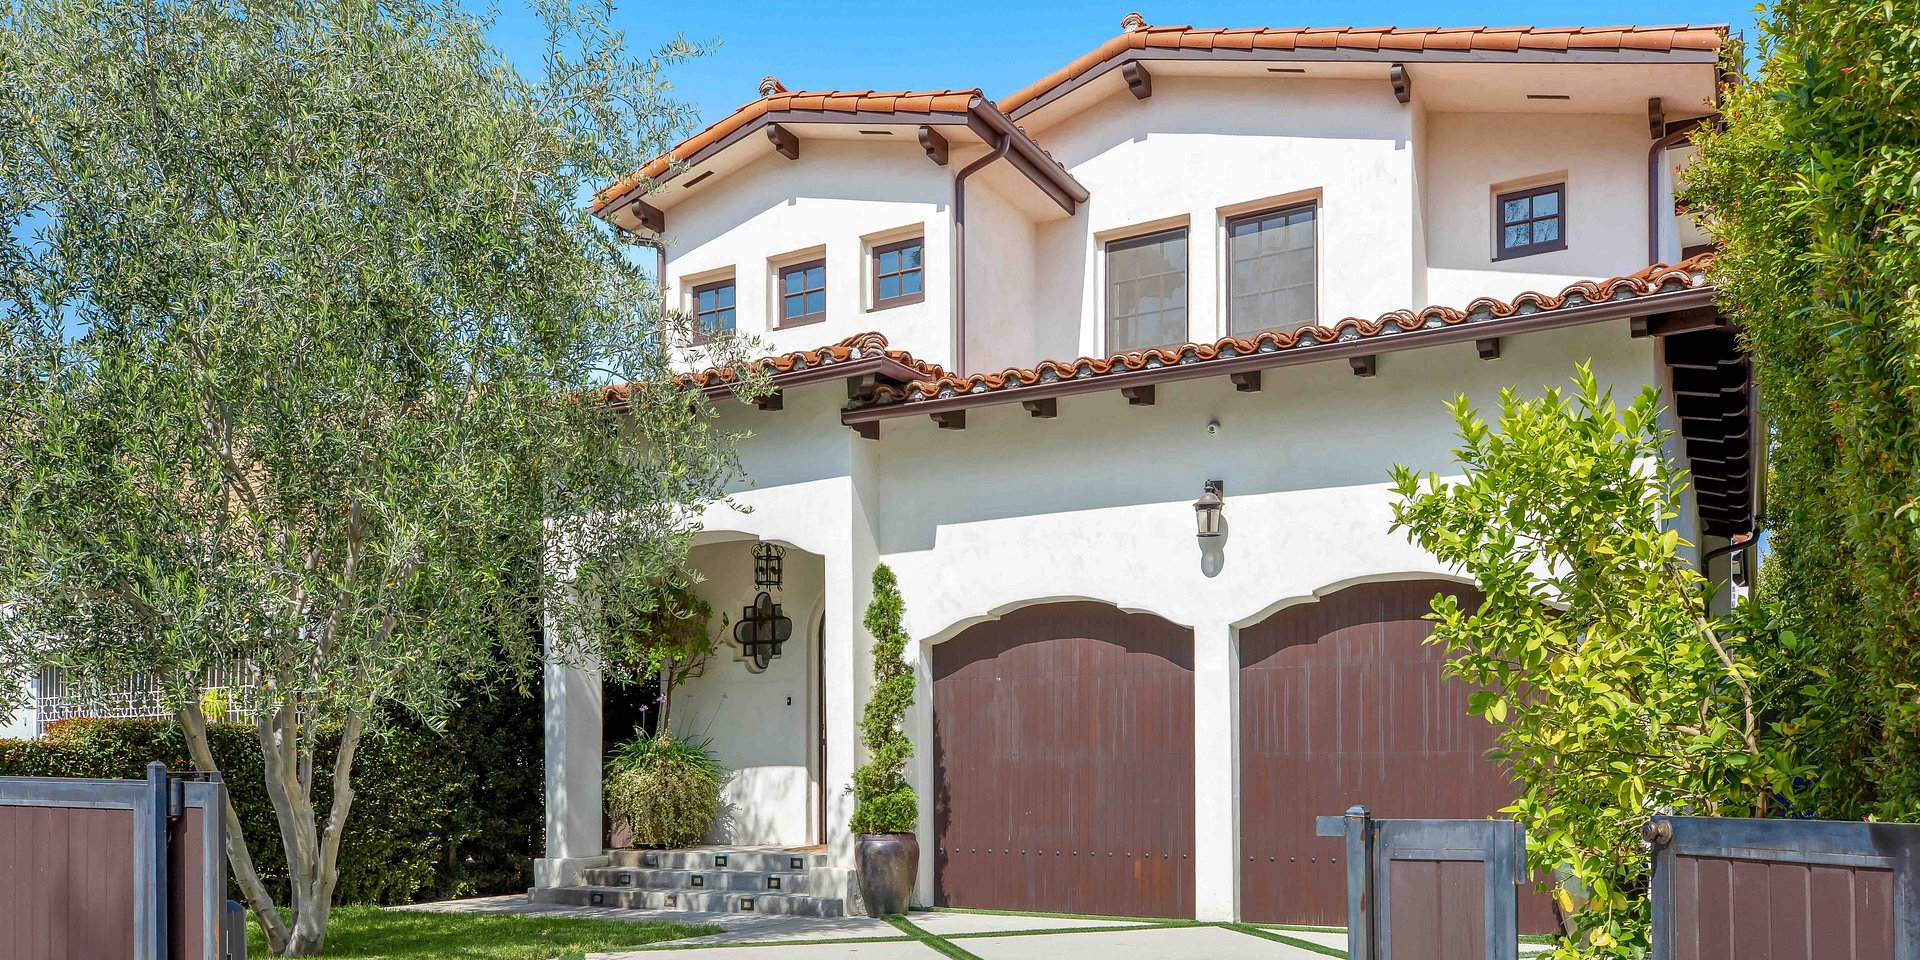 Coldwell Banker Residential Brokerage Lists Los Angeles Property for $2.945 Million